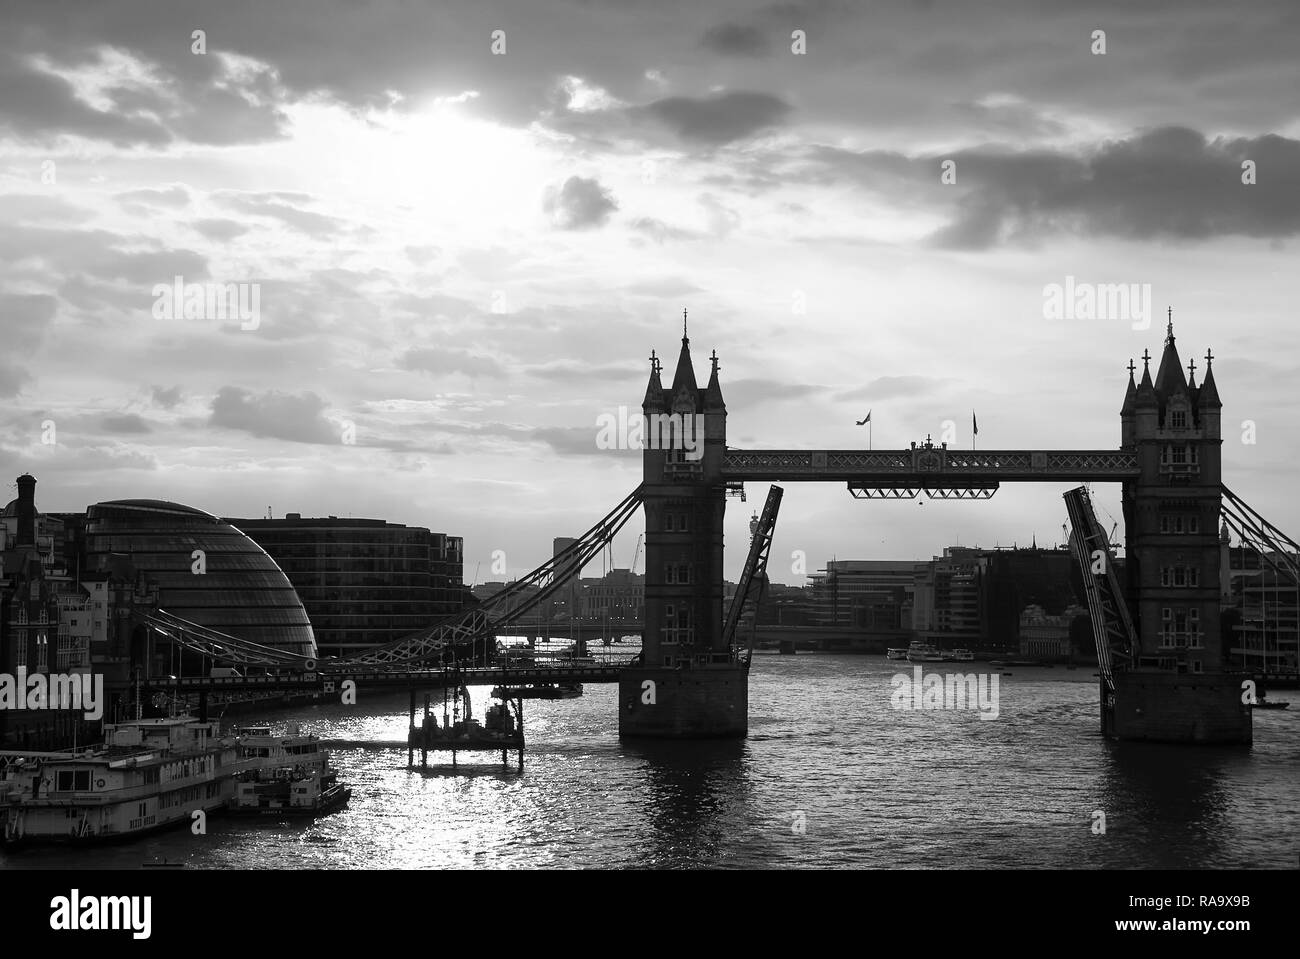 Tower bridge with skyline London, United Kingdom. Bridge over Thames river on cloudy sky. City buildings on river banks. Architecture and structure concept. Wanderlust and vacation. - Stock Image